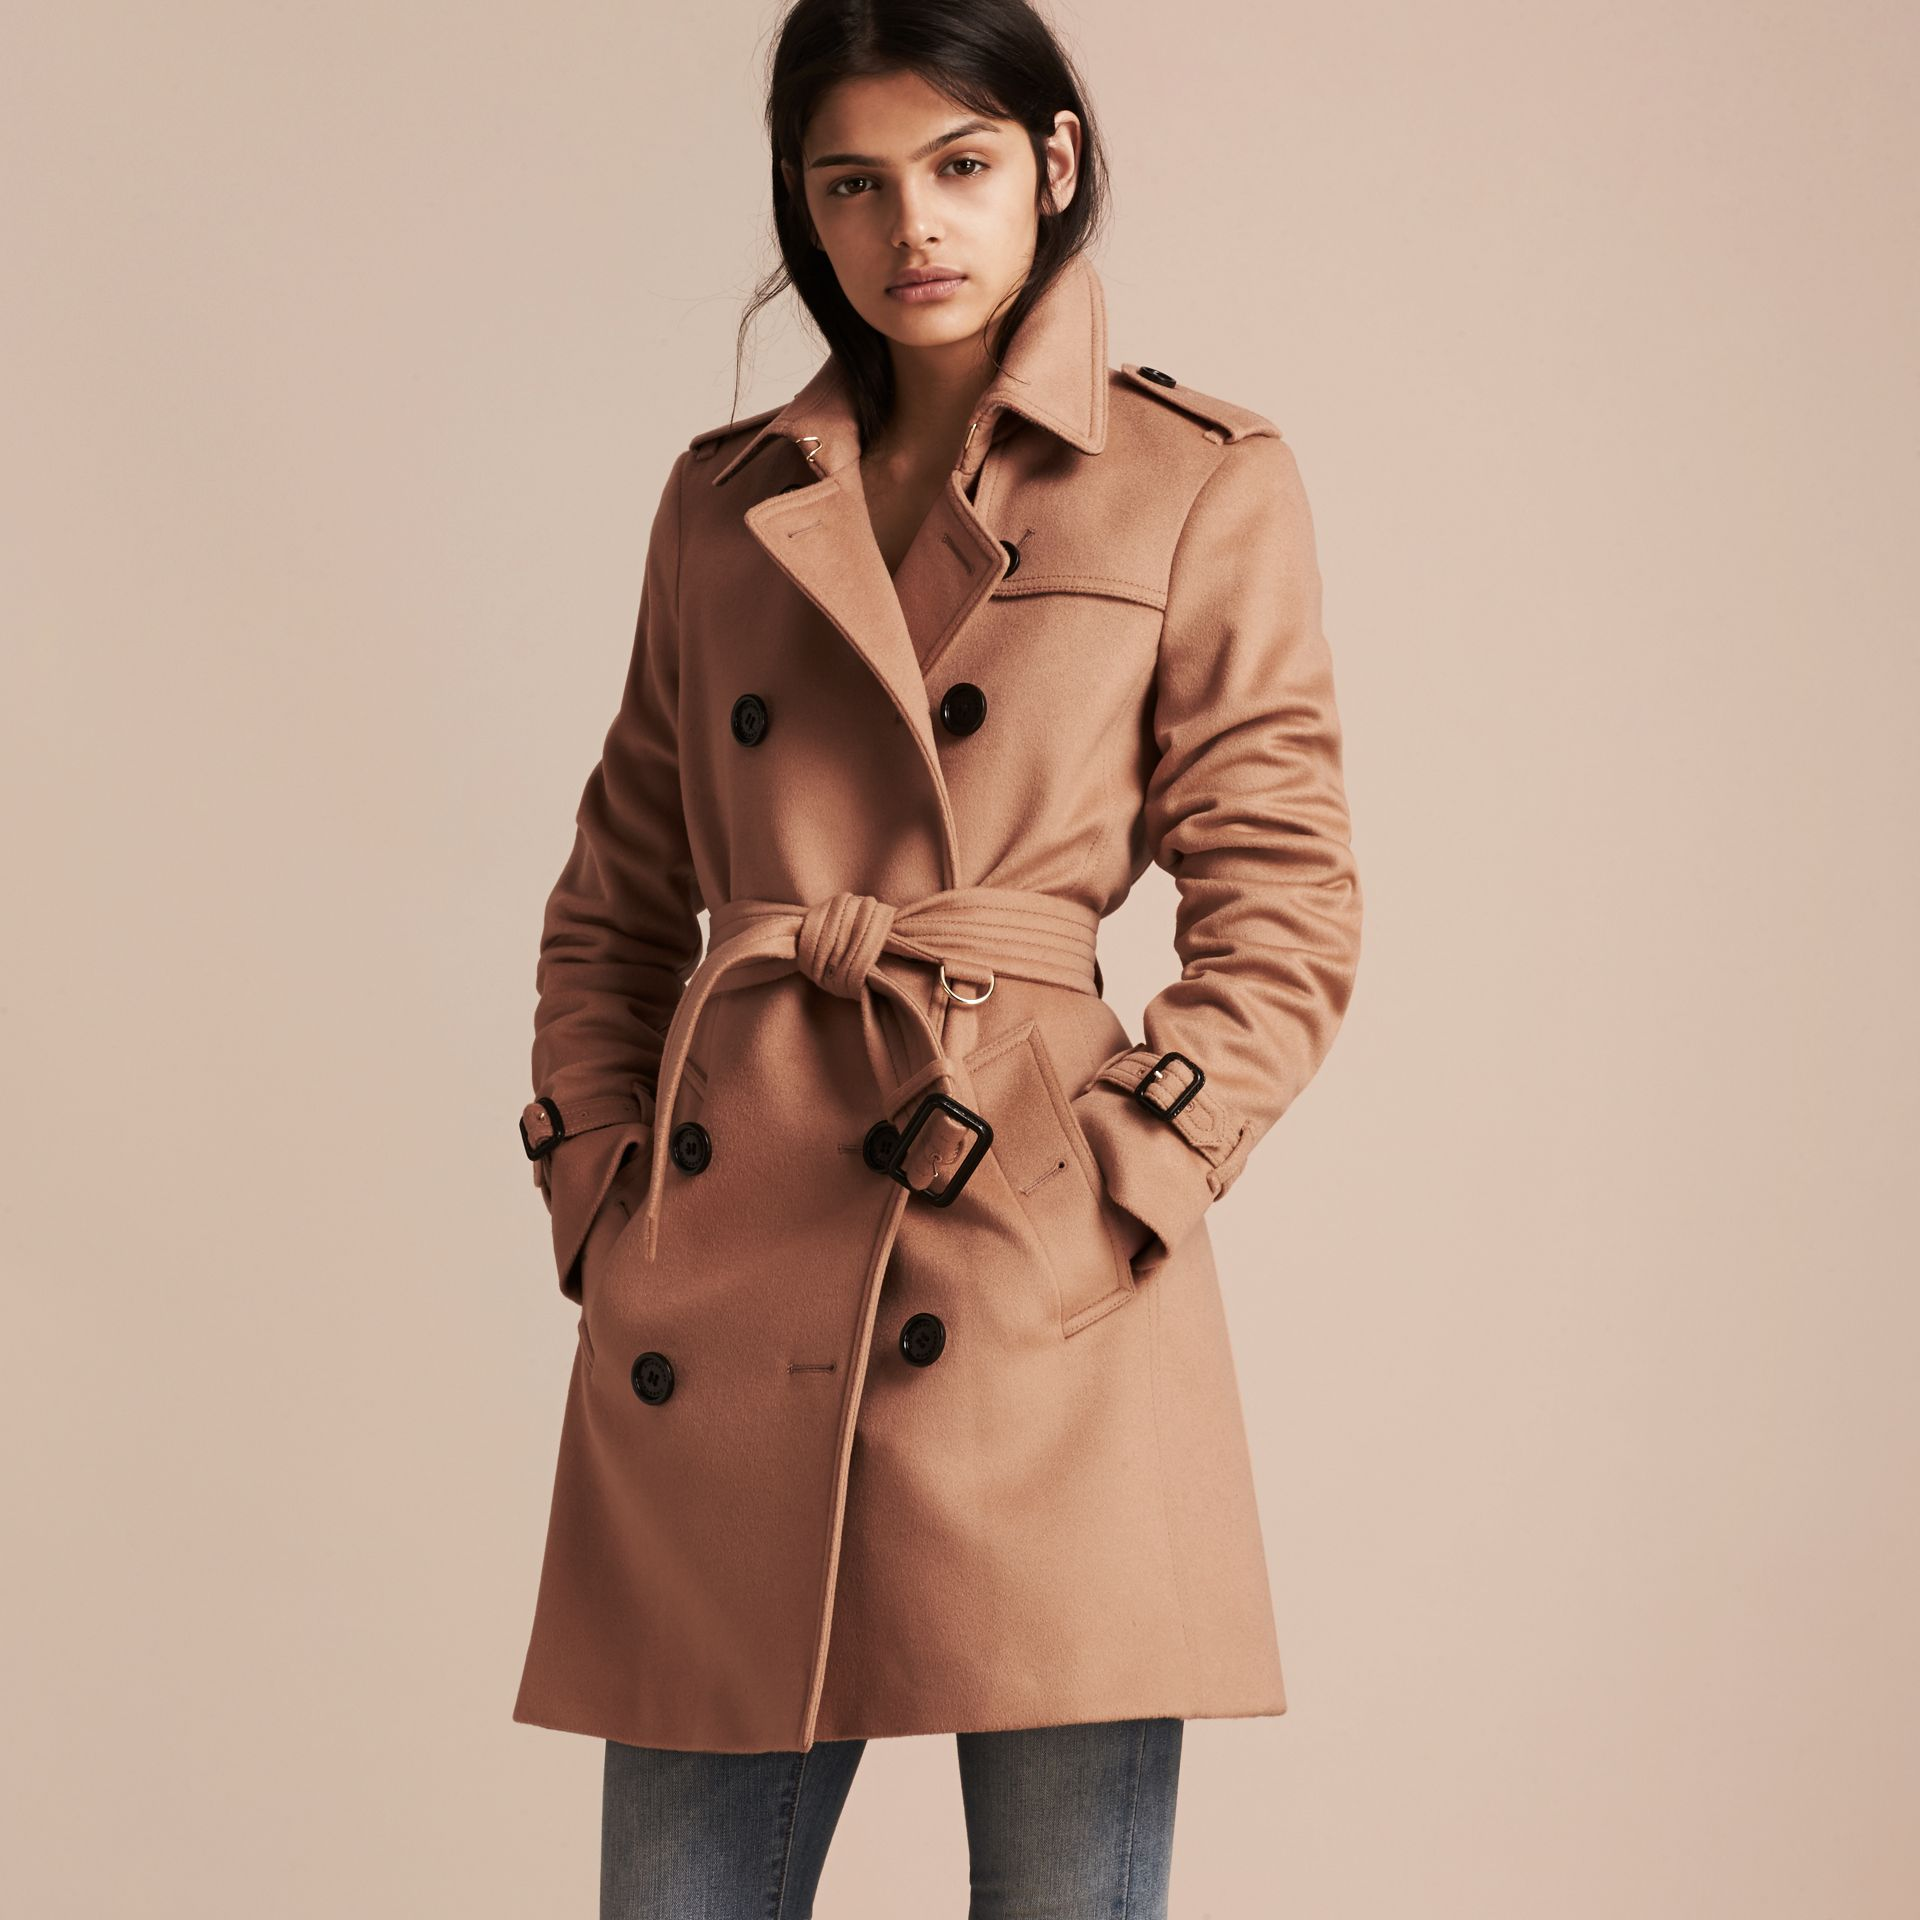 Wool Cashmere Trench Coat in Camel - Women | Burberry United States